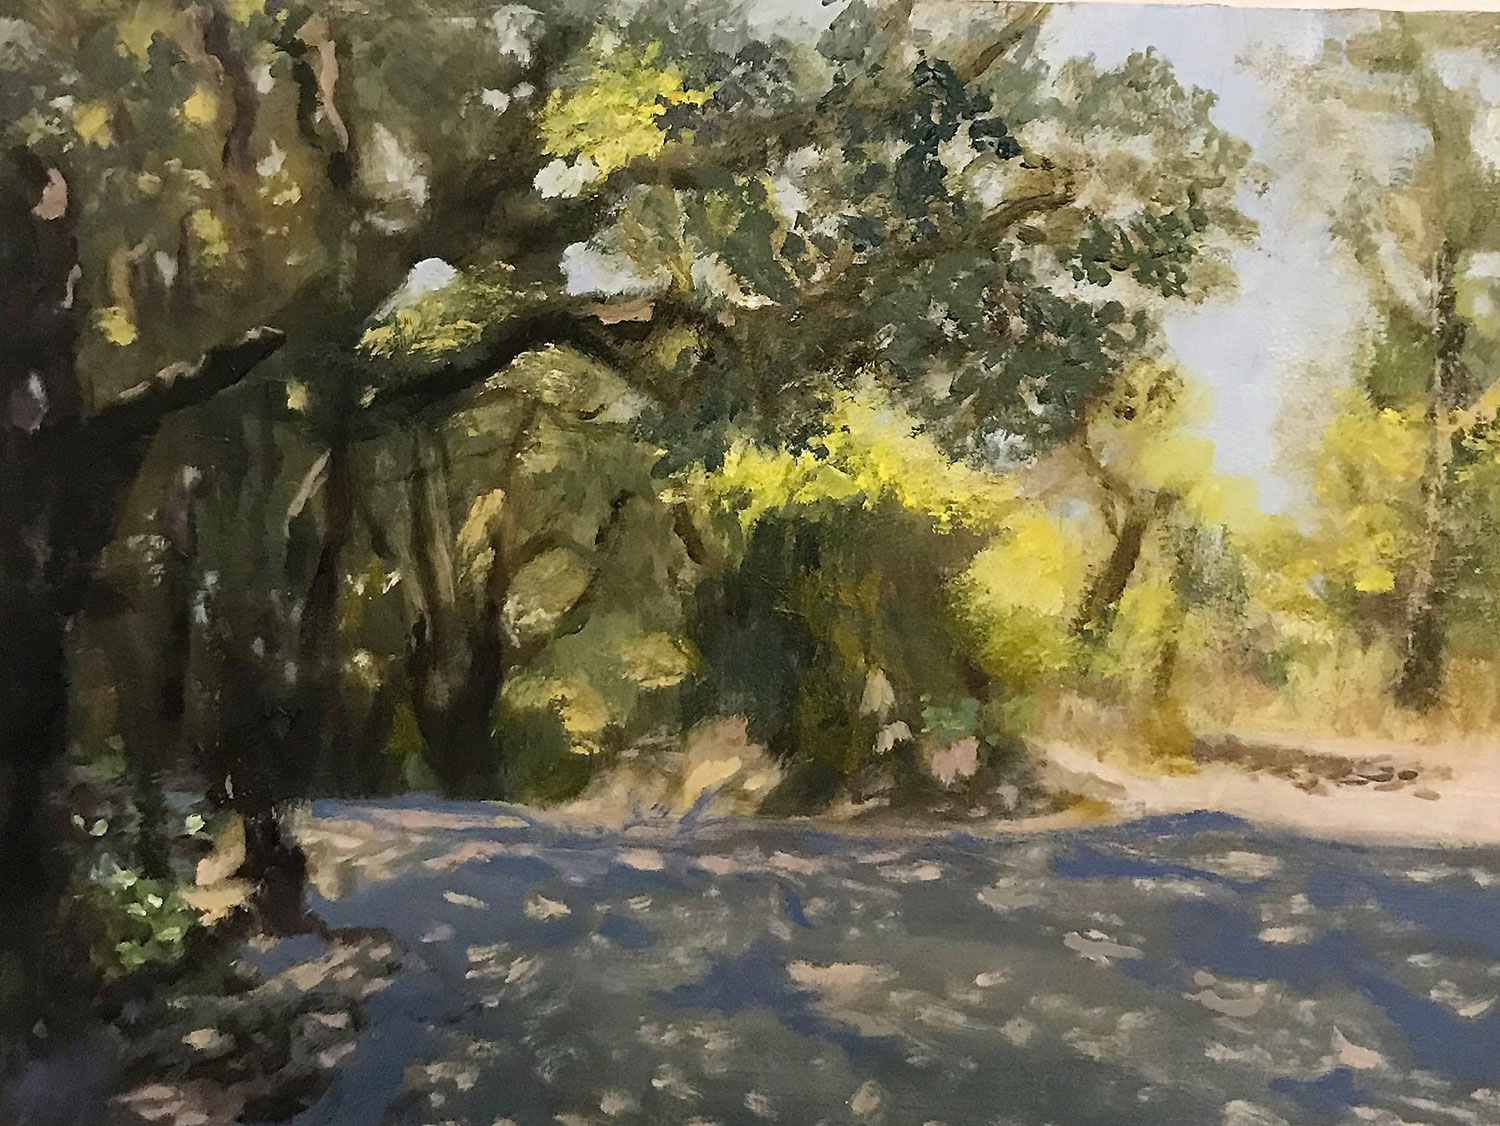 Lower Road to Vineyard, Provence, France (SOLD)